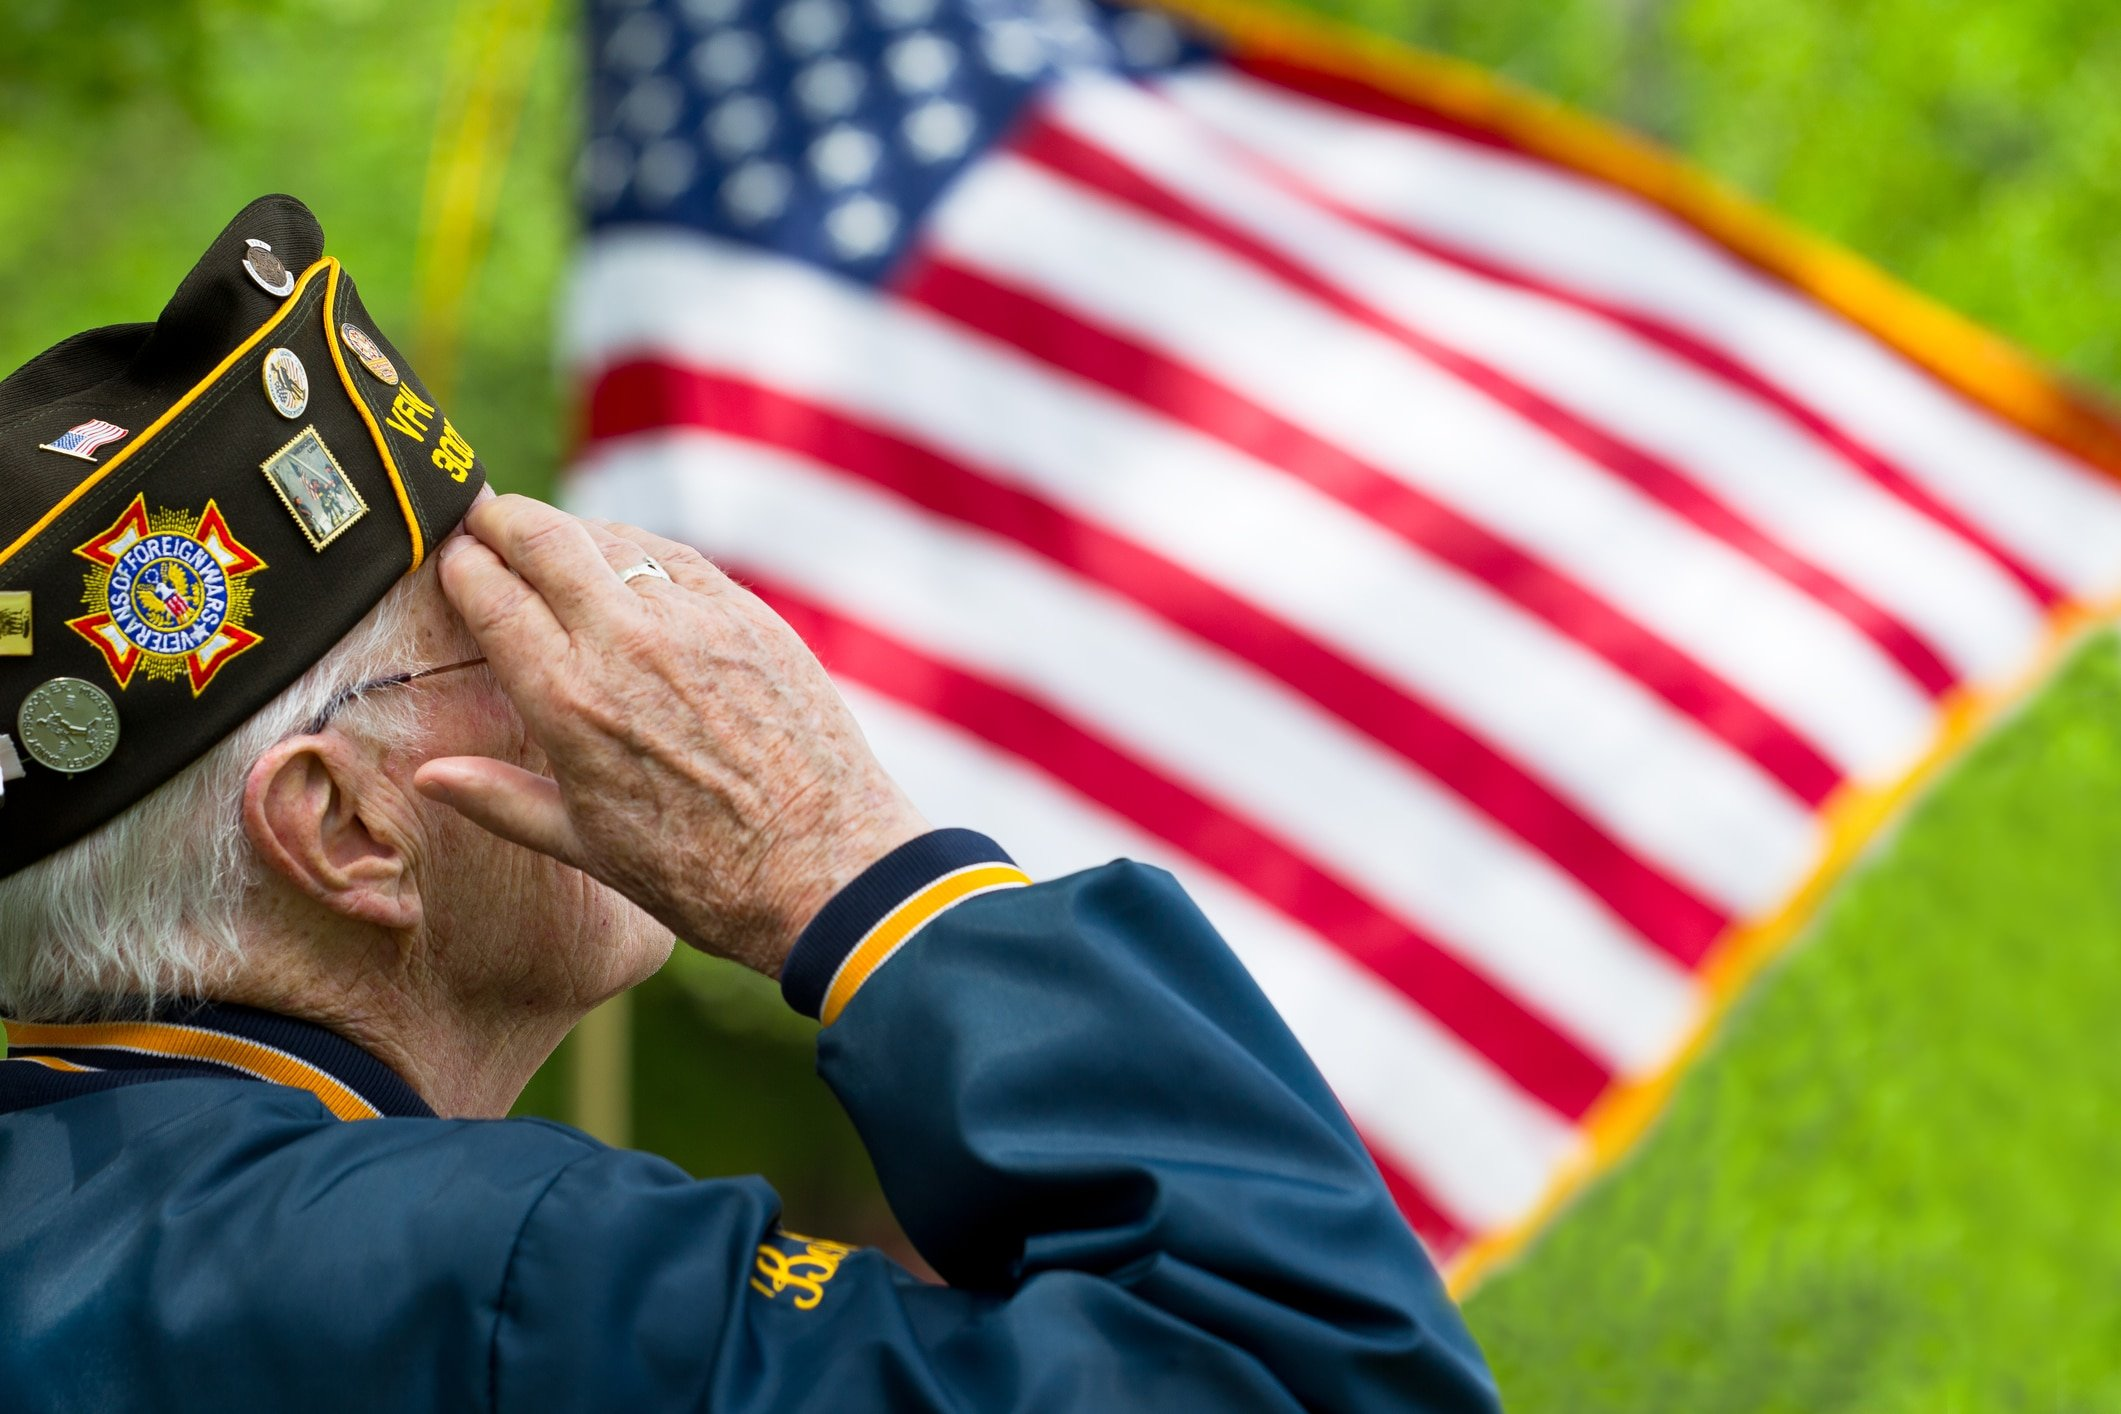 Find Veterans Life Insurance: Coverage After the Military